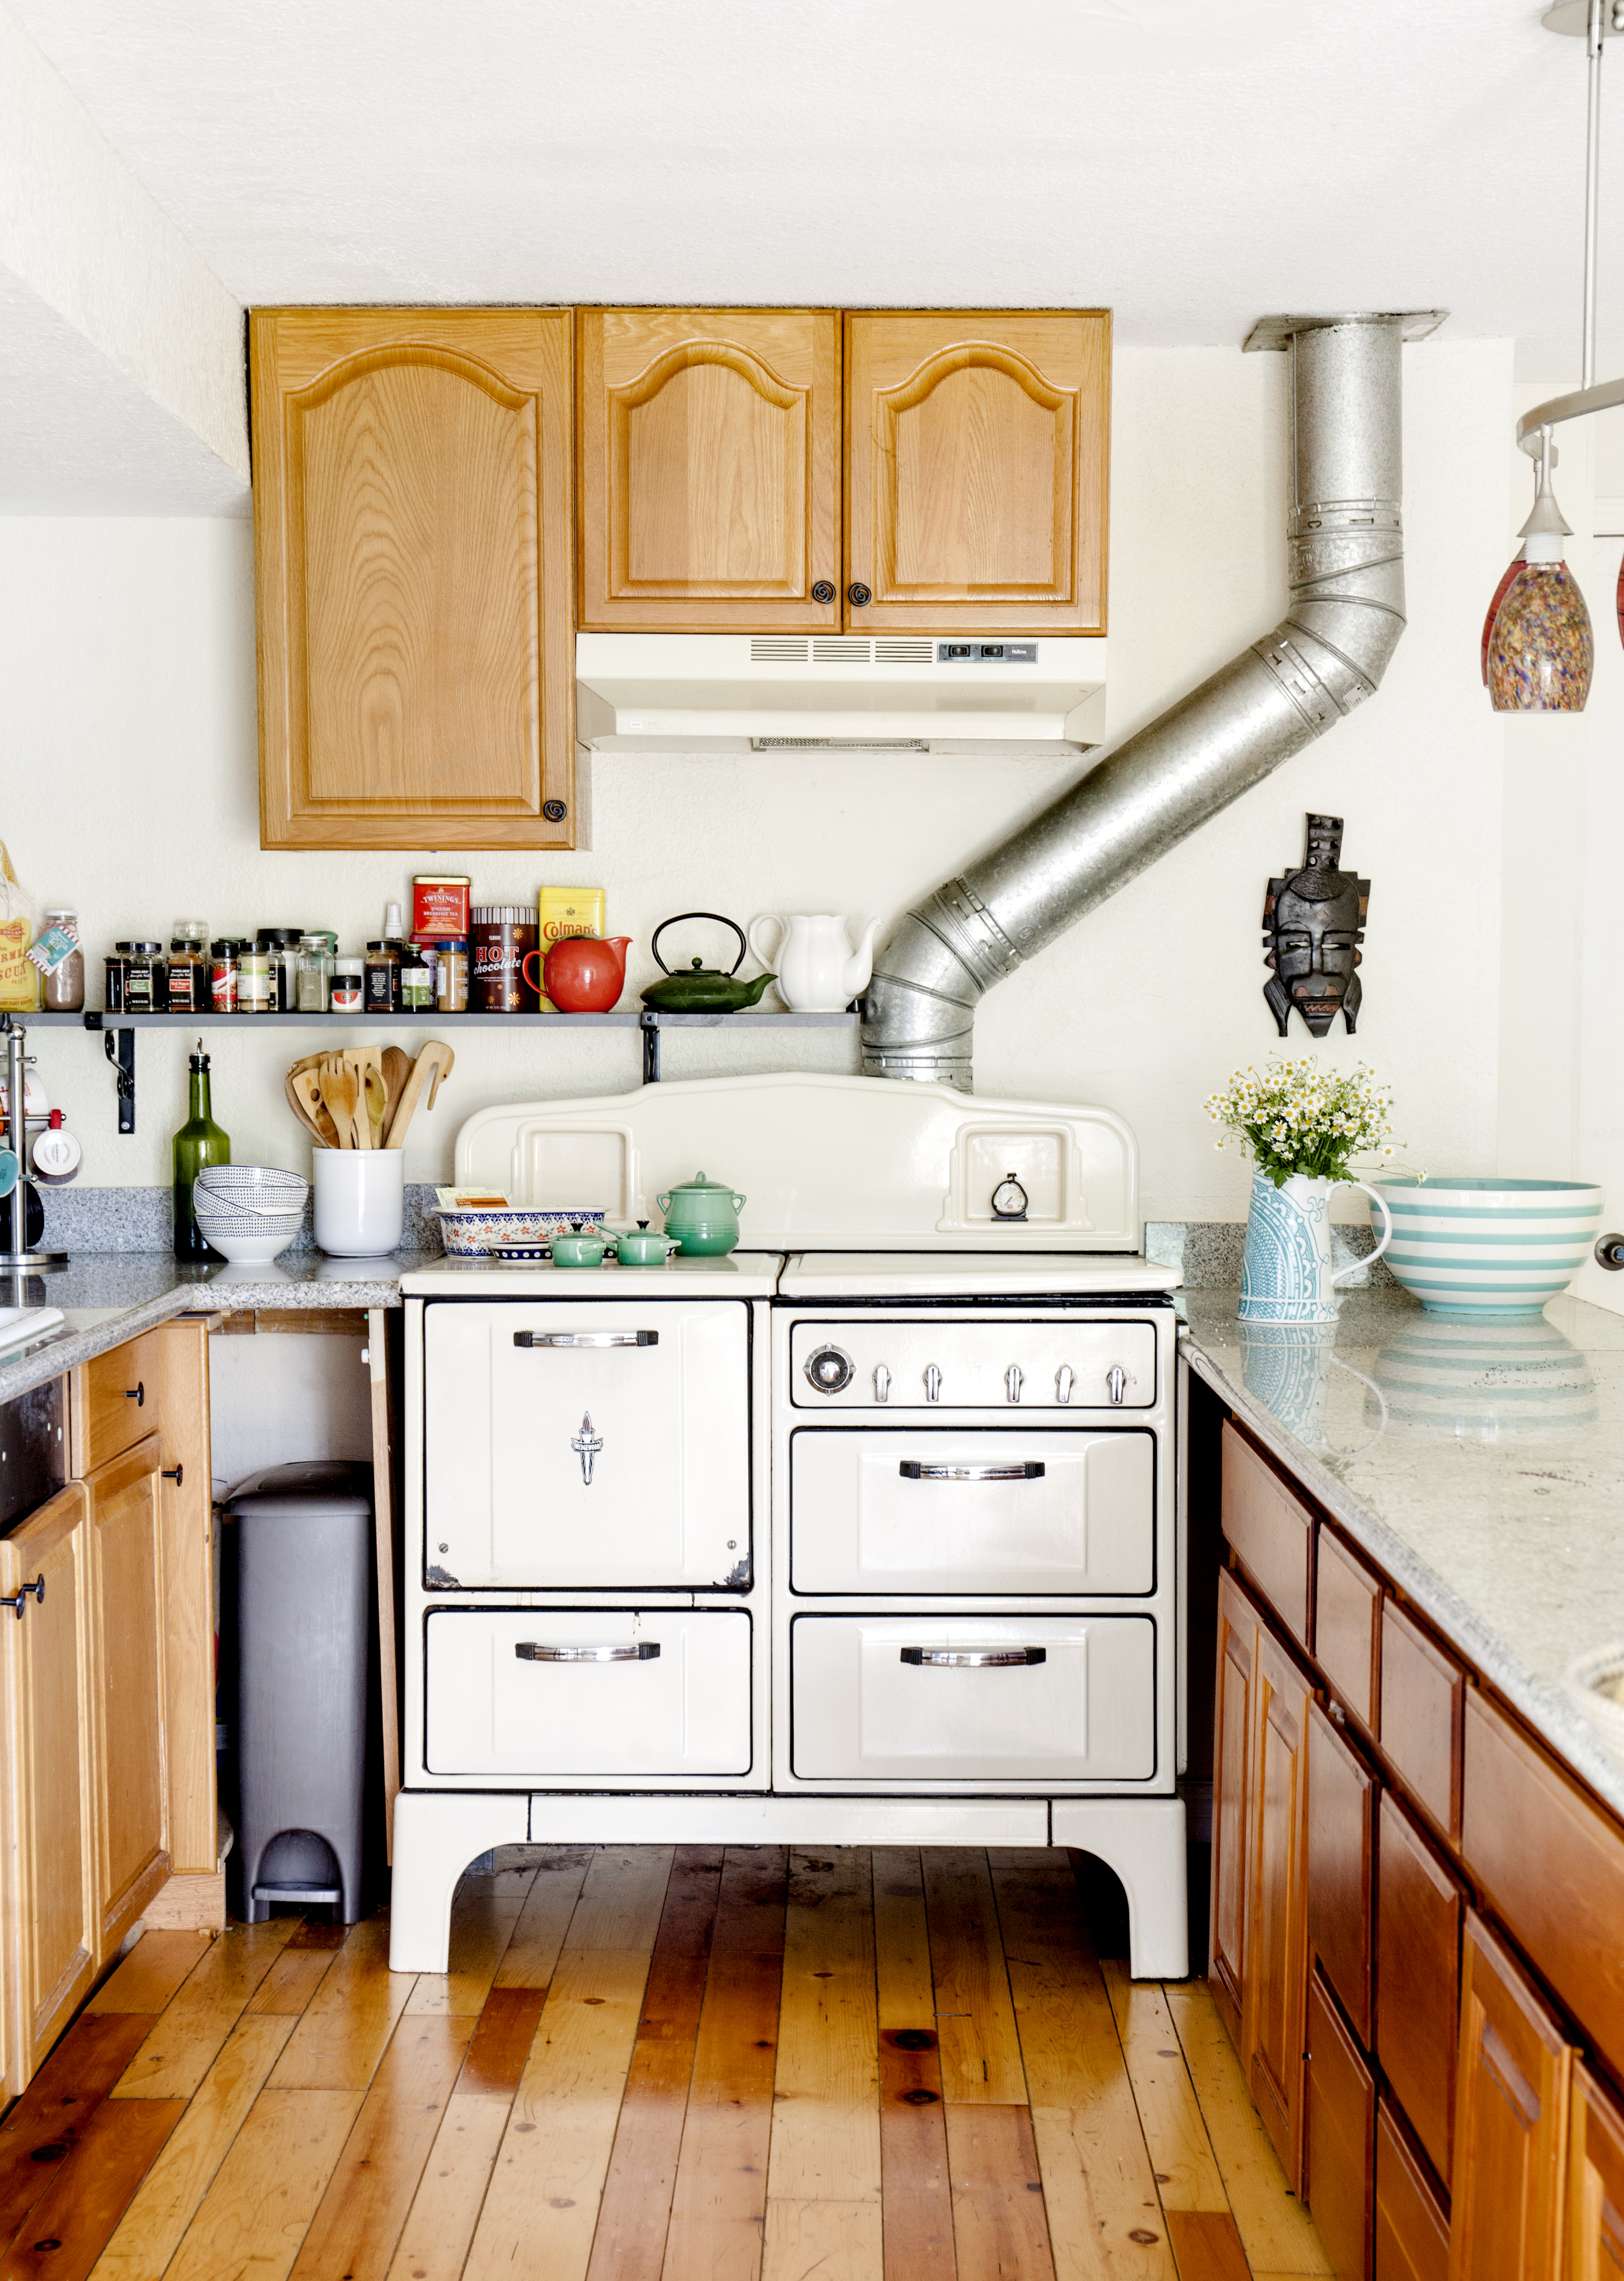 8 easy ways to revamp your kitchen